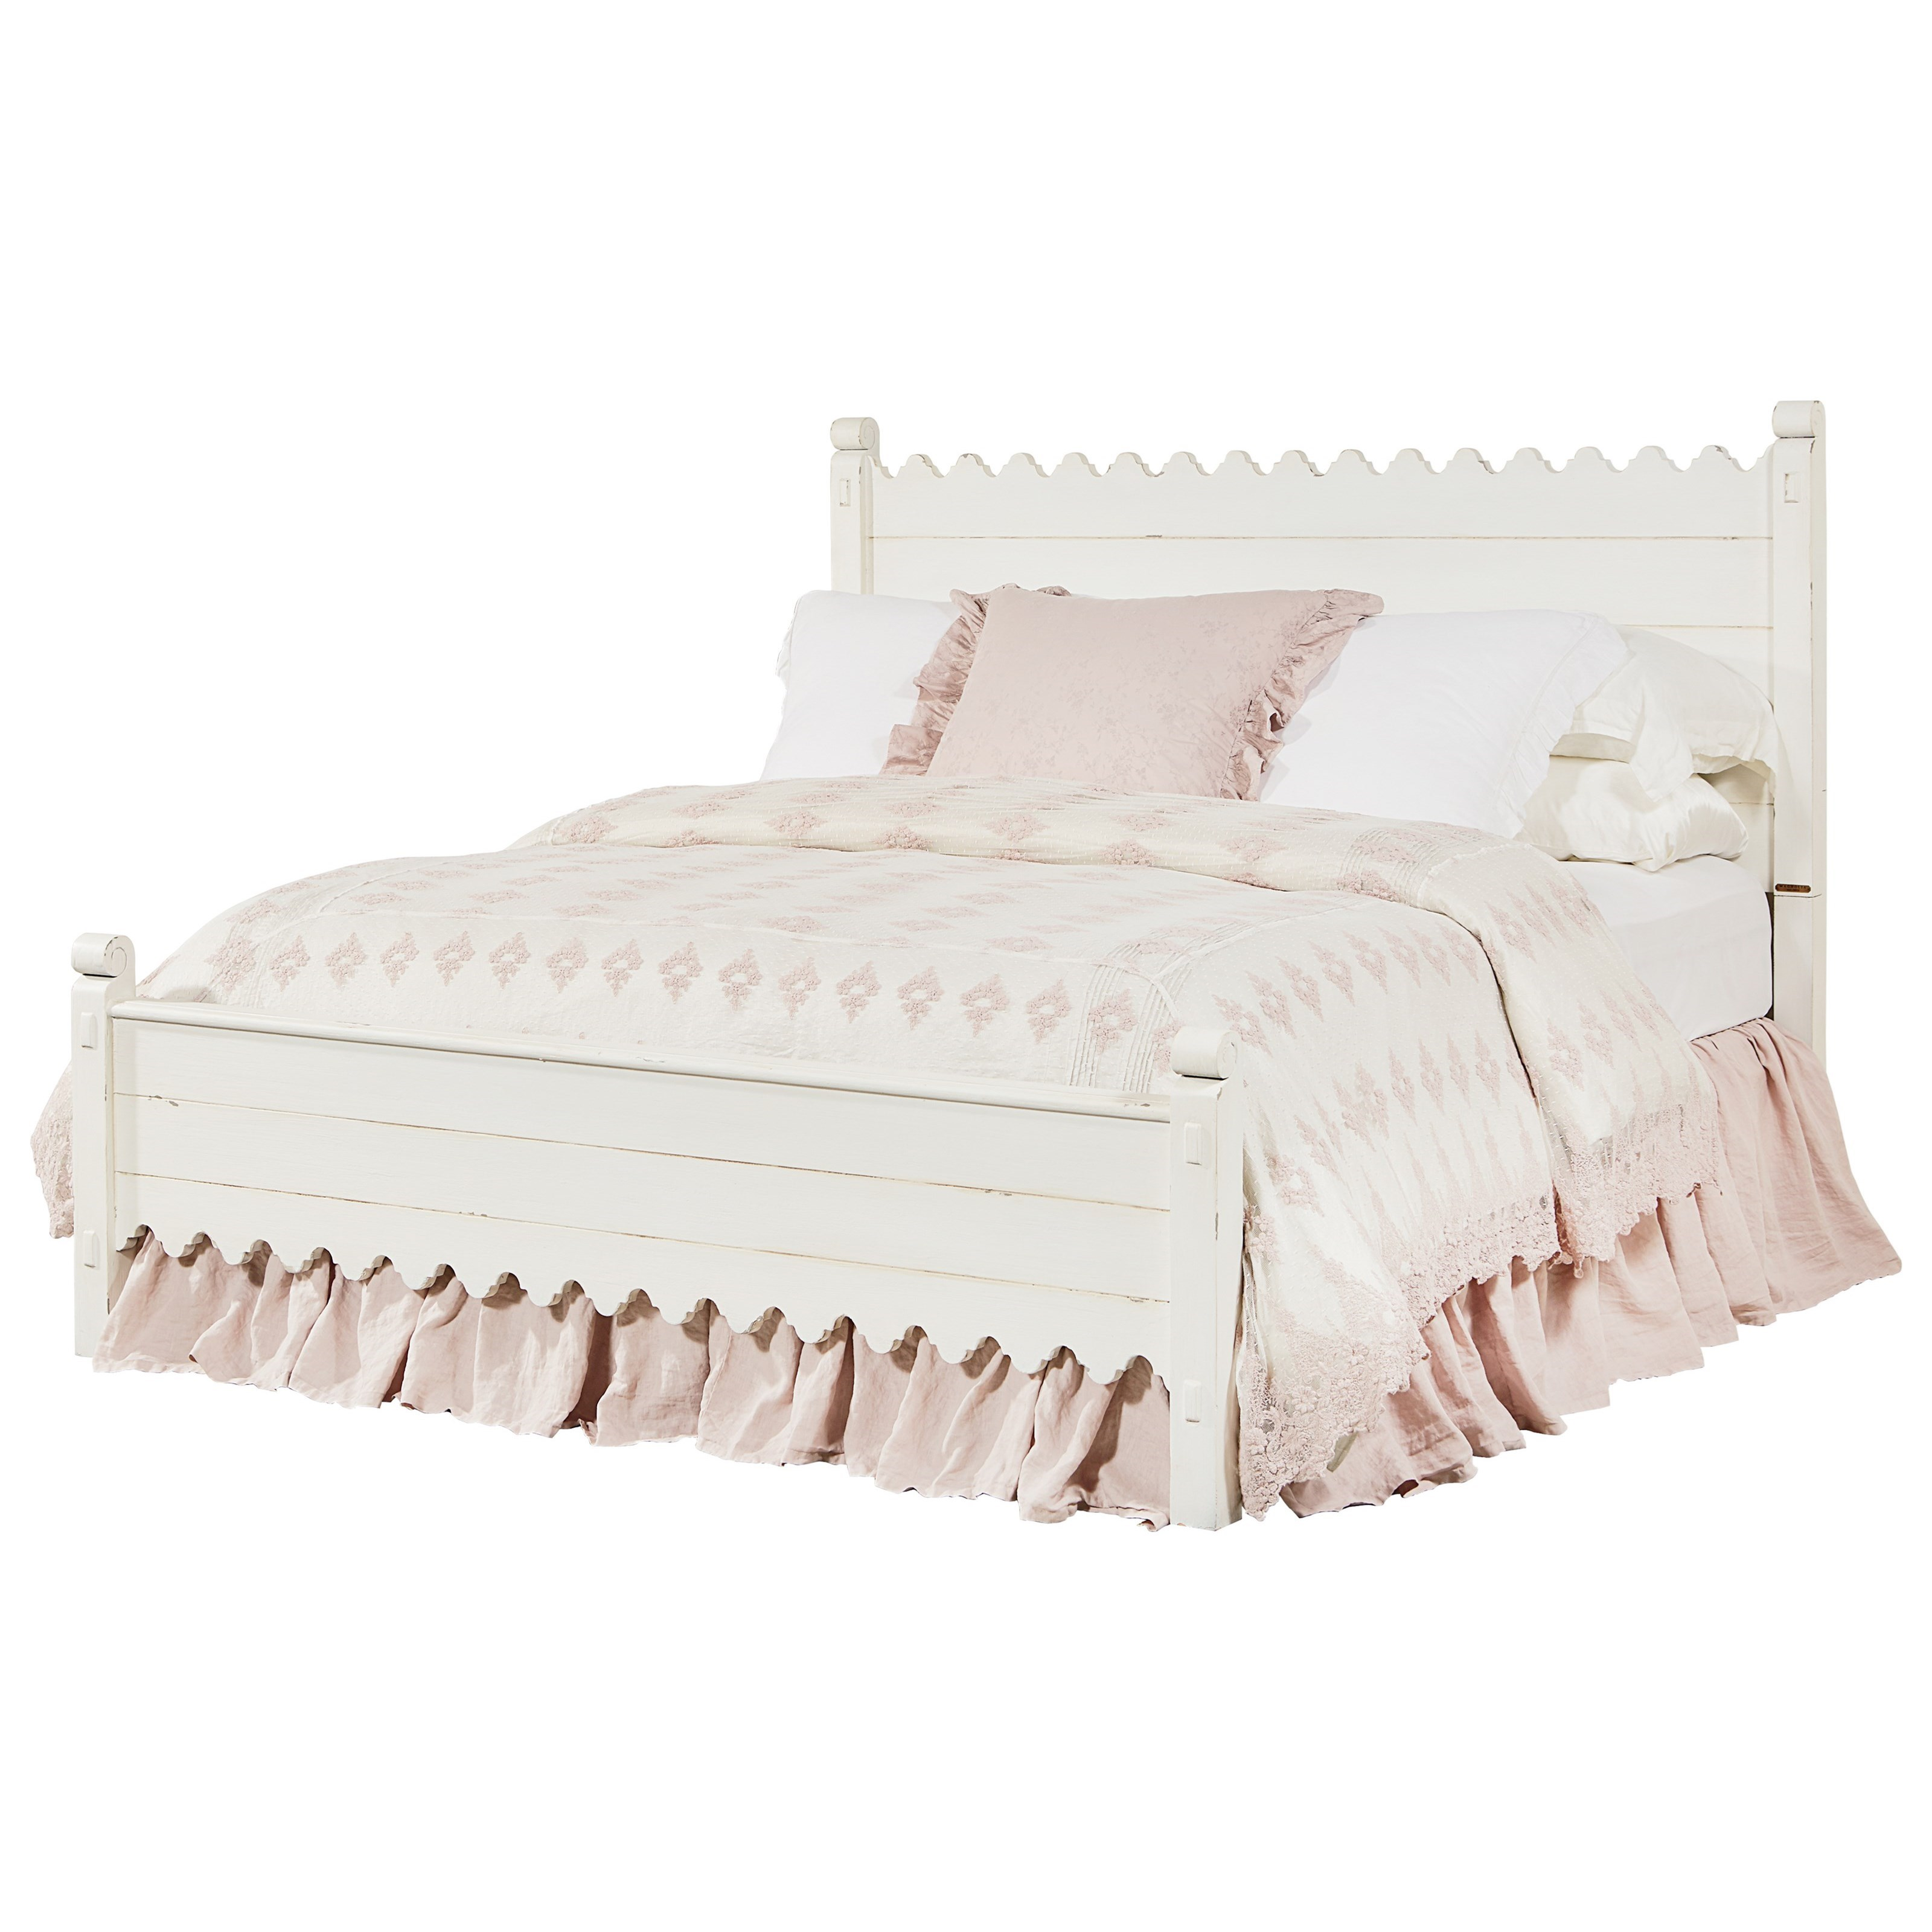 Magnolia Home By Joanna Gaines Farmhouse Queen Bed With Scallop Trimming Olinde 39 S Furniture